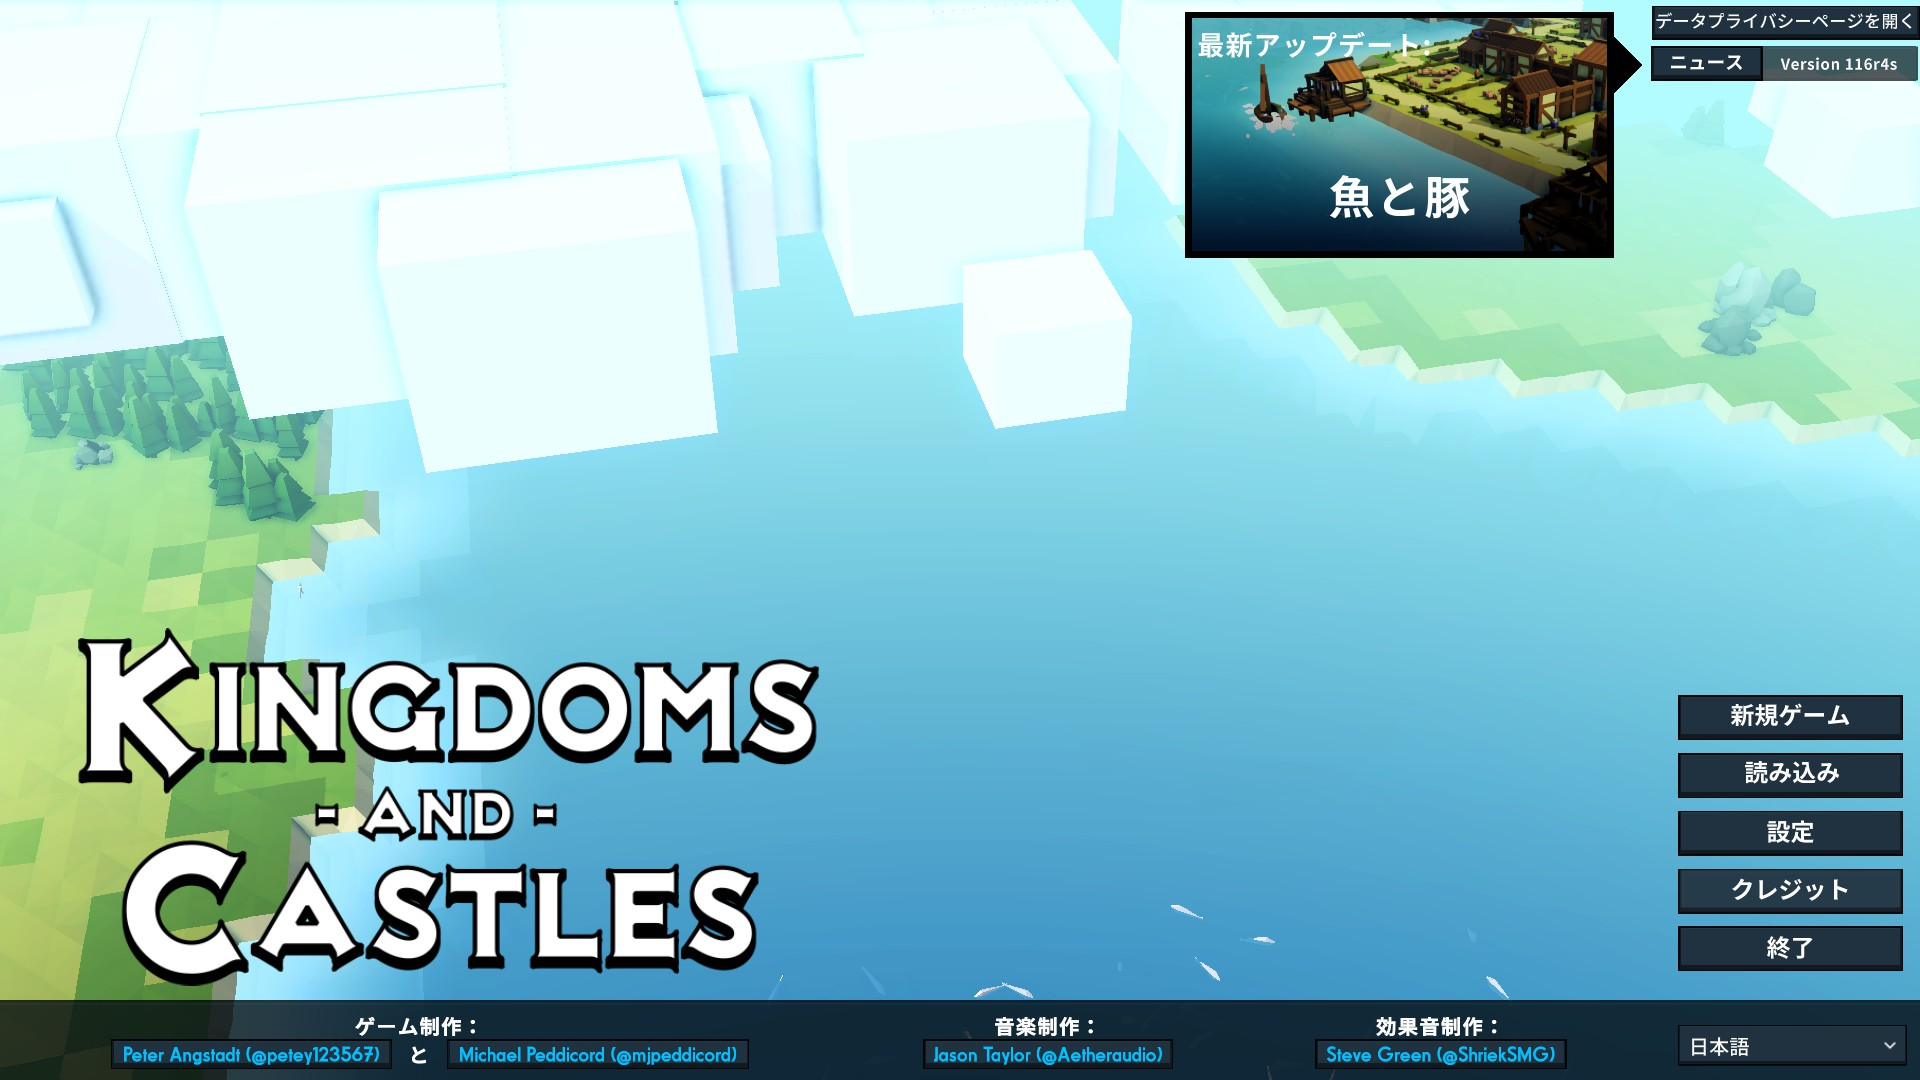 KINGDOMS AND CASTLES(PC)感想・レビュー